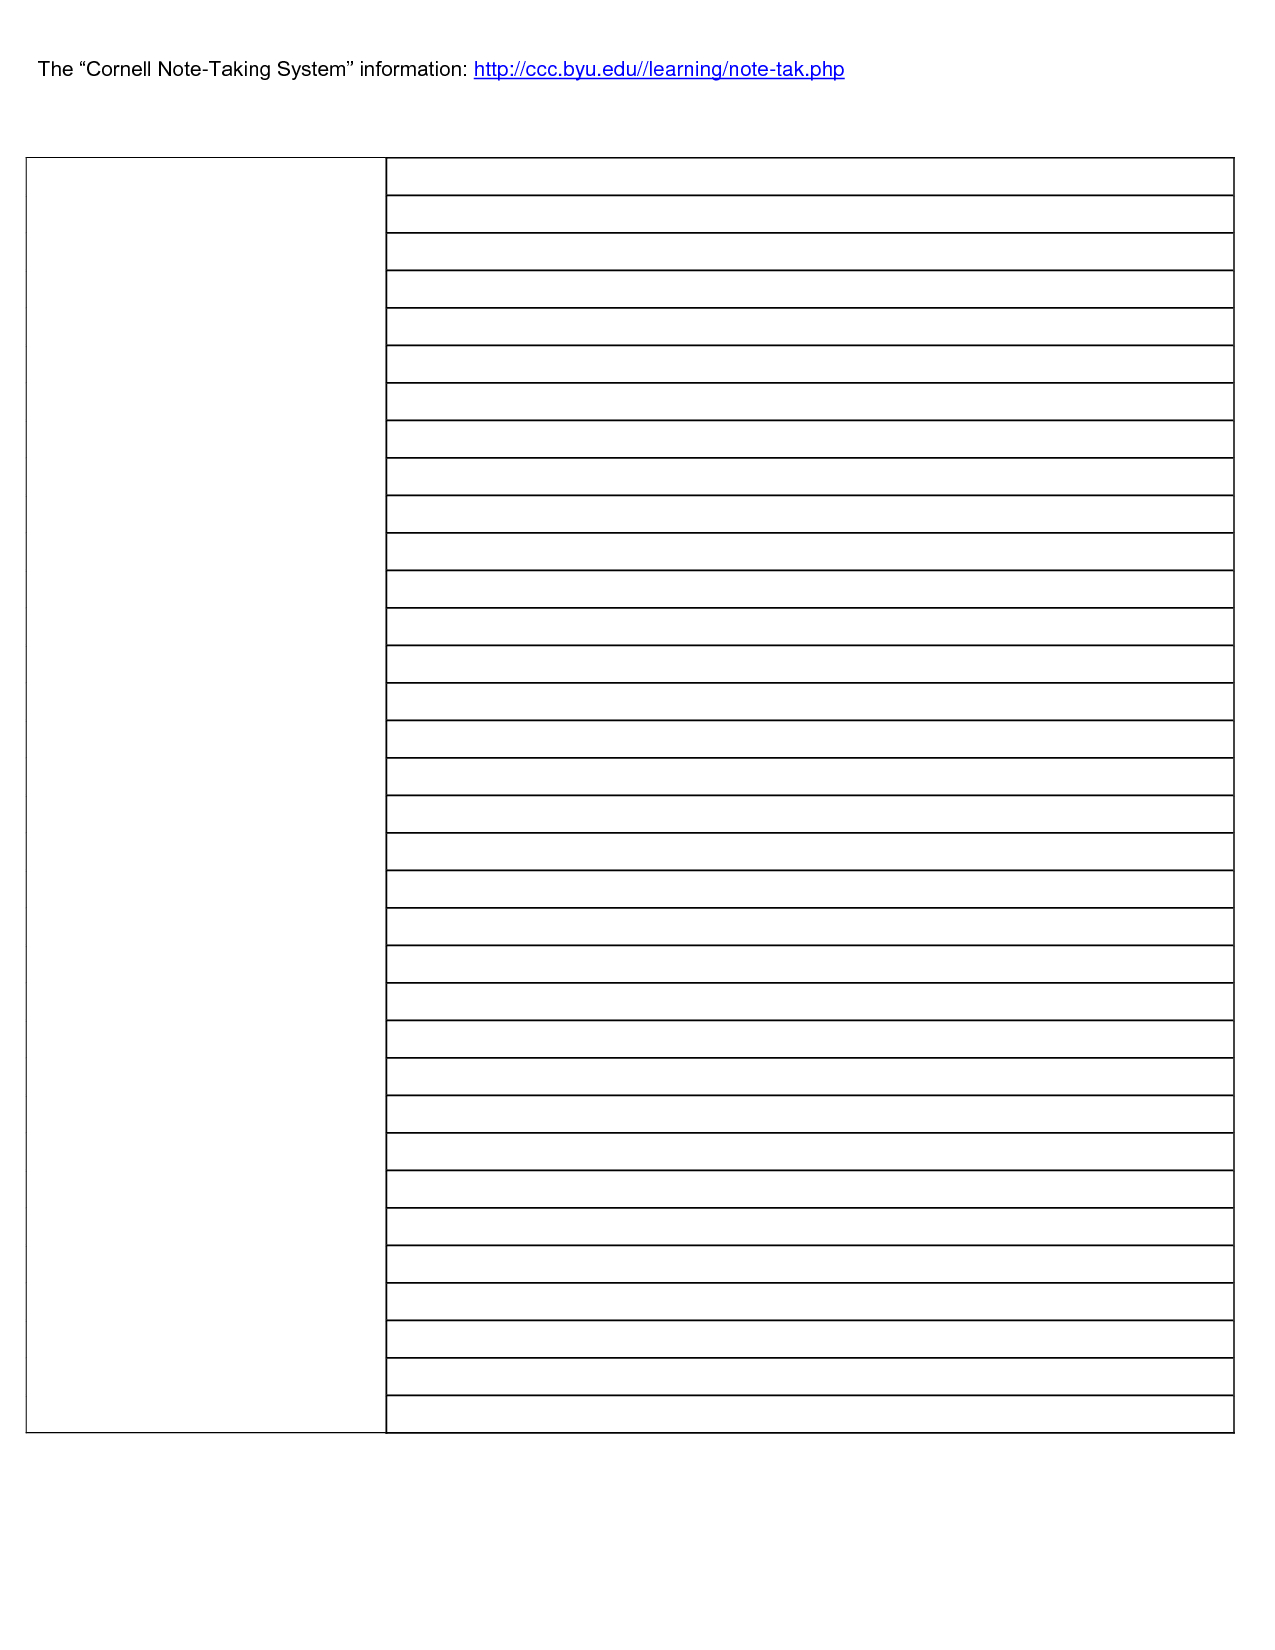 023 Cornell Note Taking Template Word 31836 Research Paper intended for Note Taking Template Word